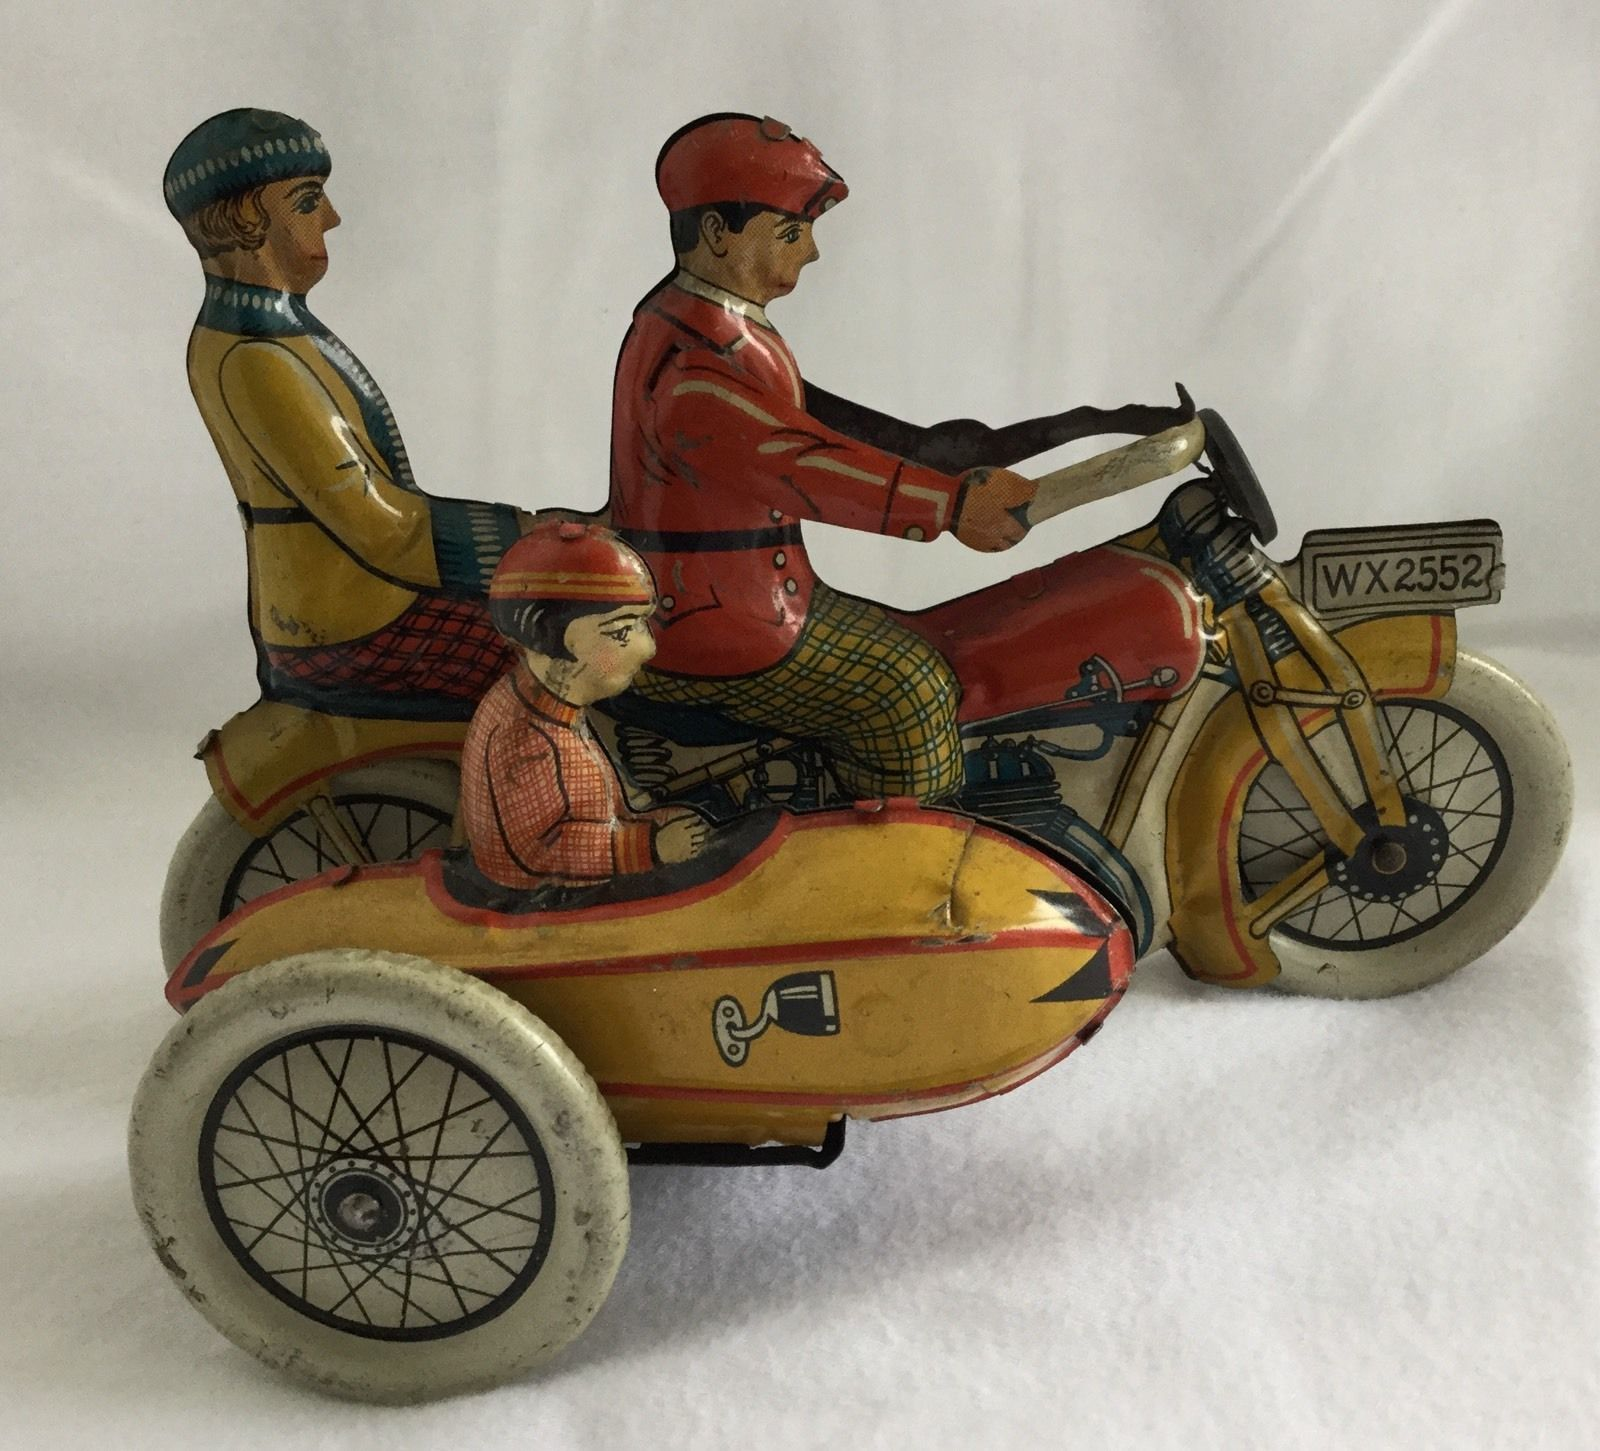 Gely Tin Motorcycle with Sidecar/ebay | Vintage Motorcycle, Scooter